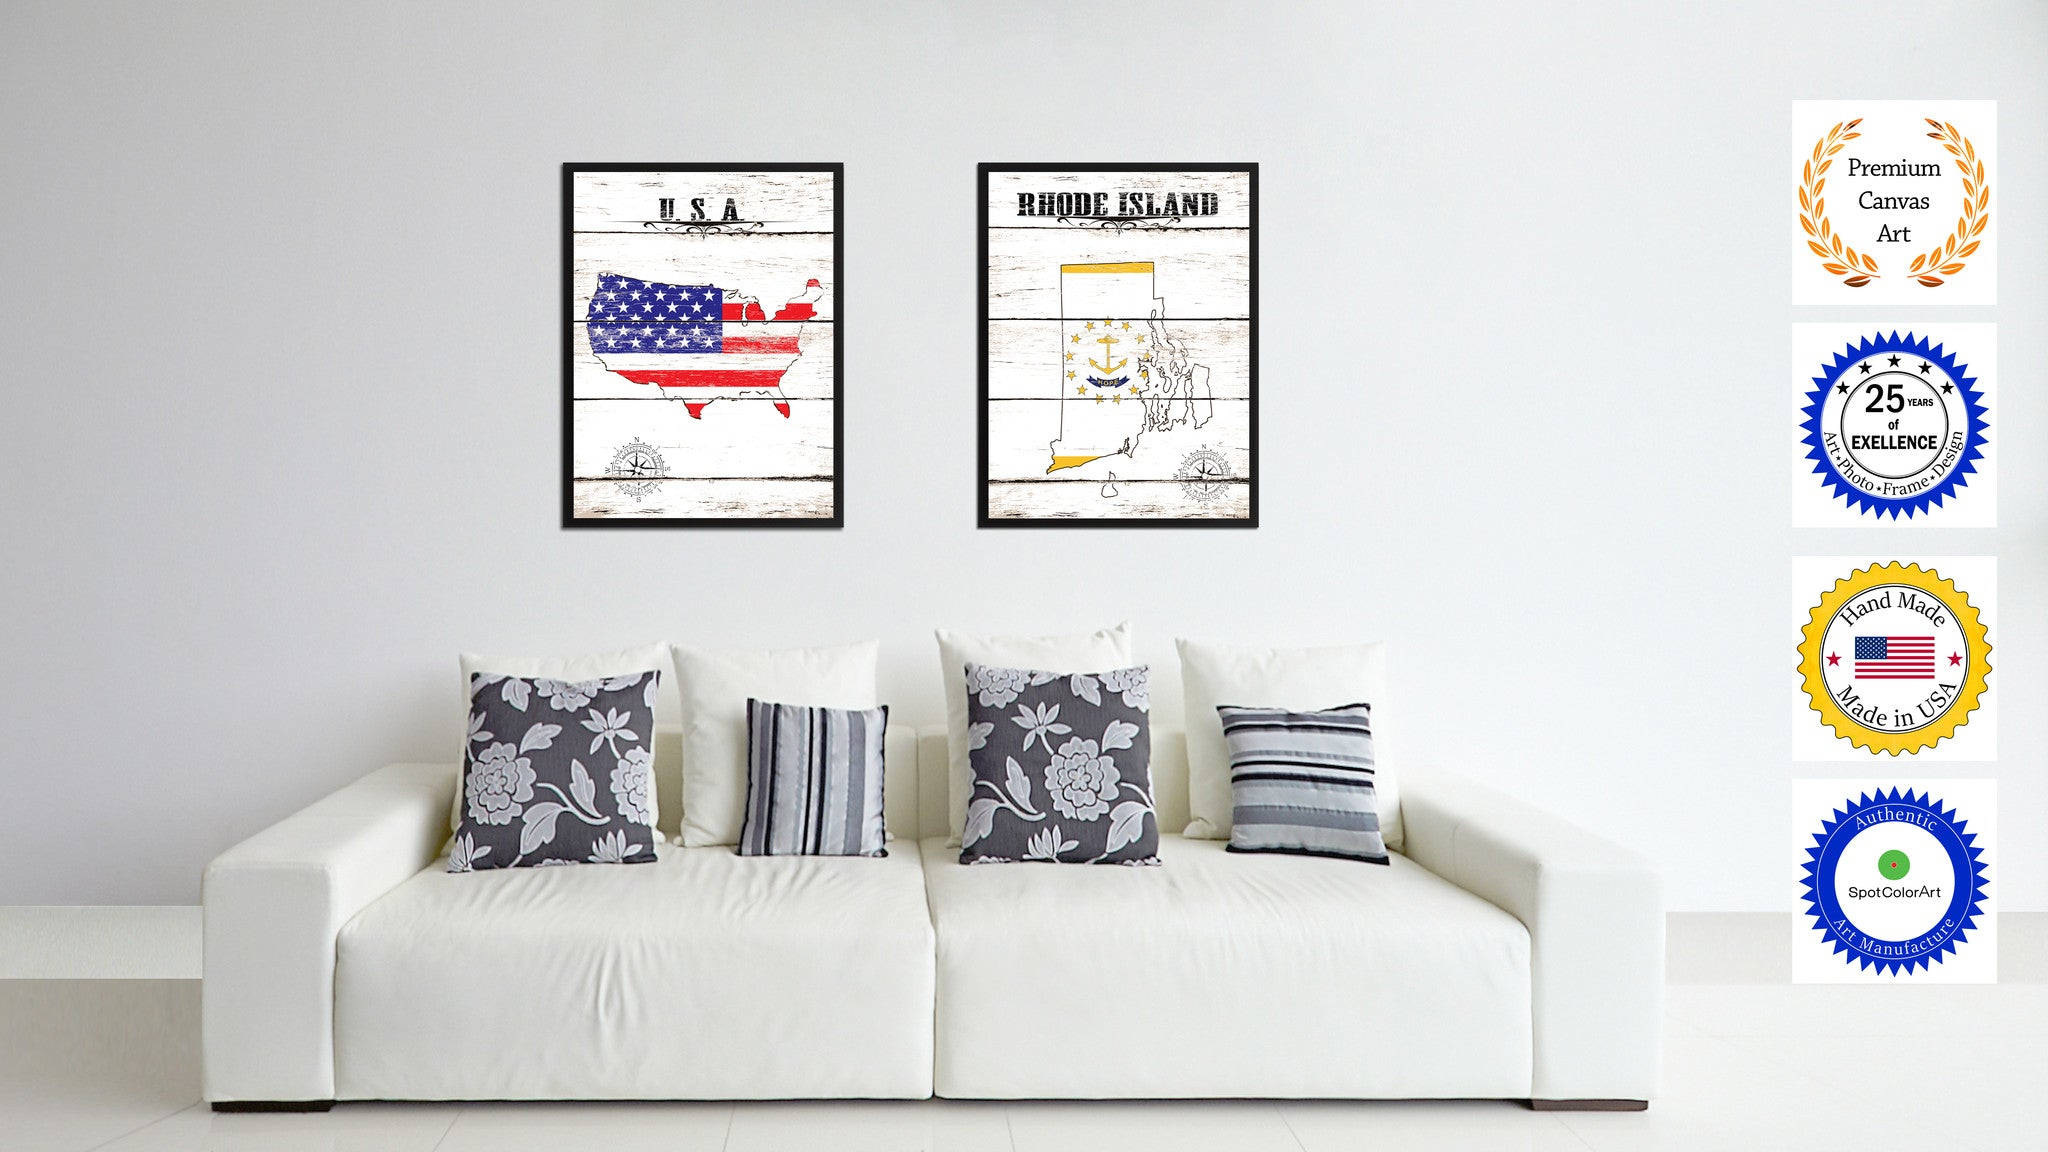 Rhode island state home decor office wall art decoration for Room decor gift ideas